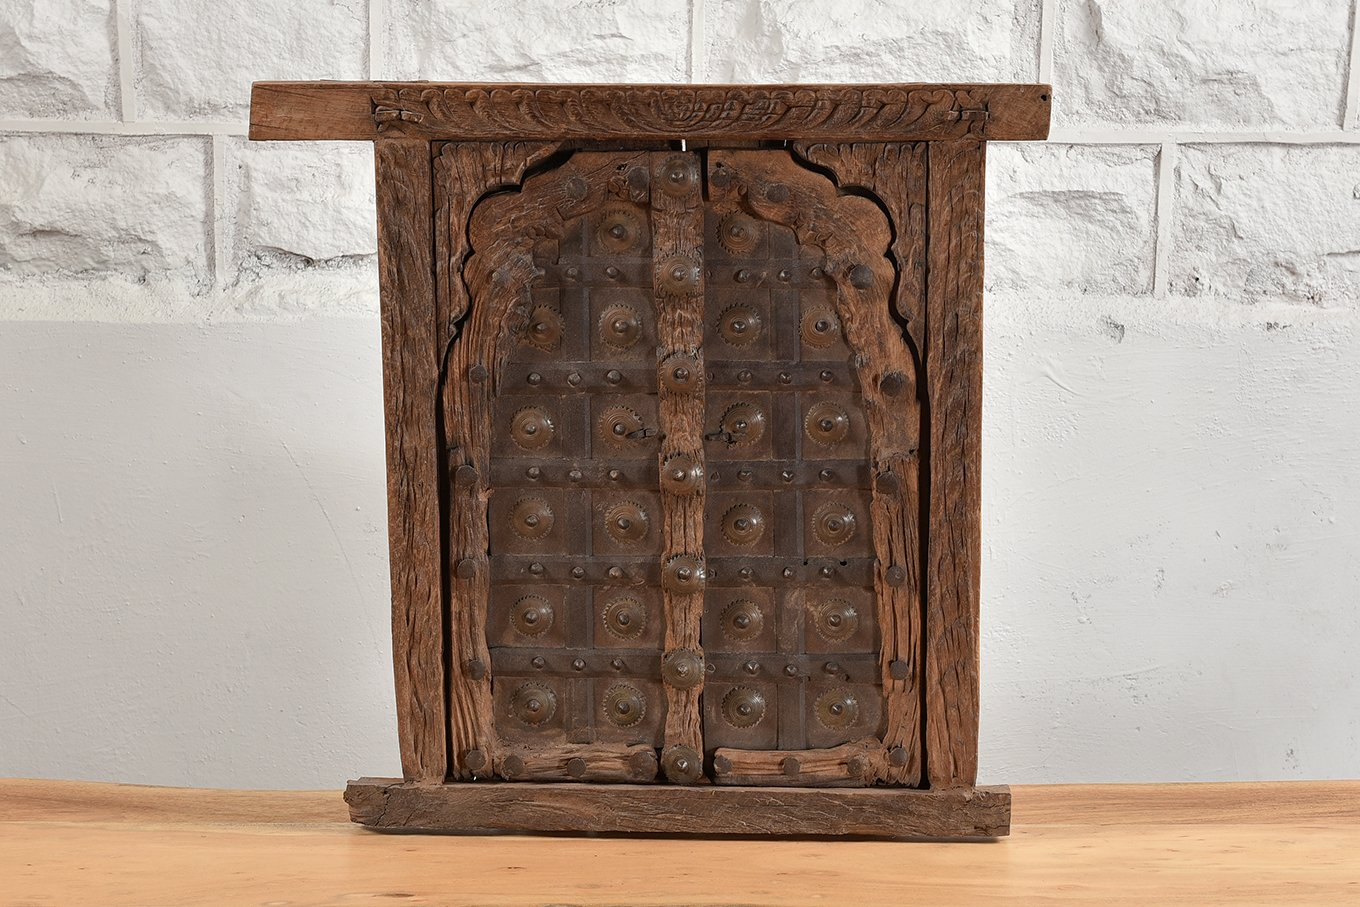 Traditional eastern window frame with shutter doors